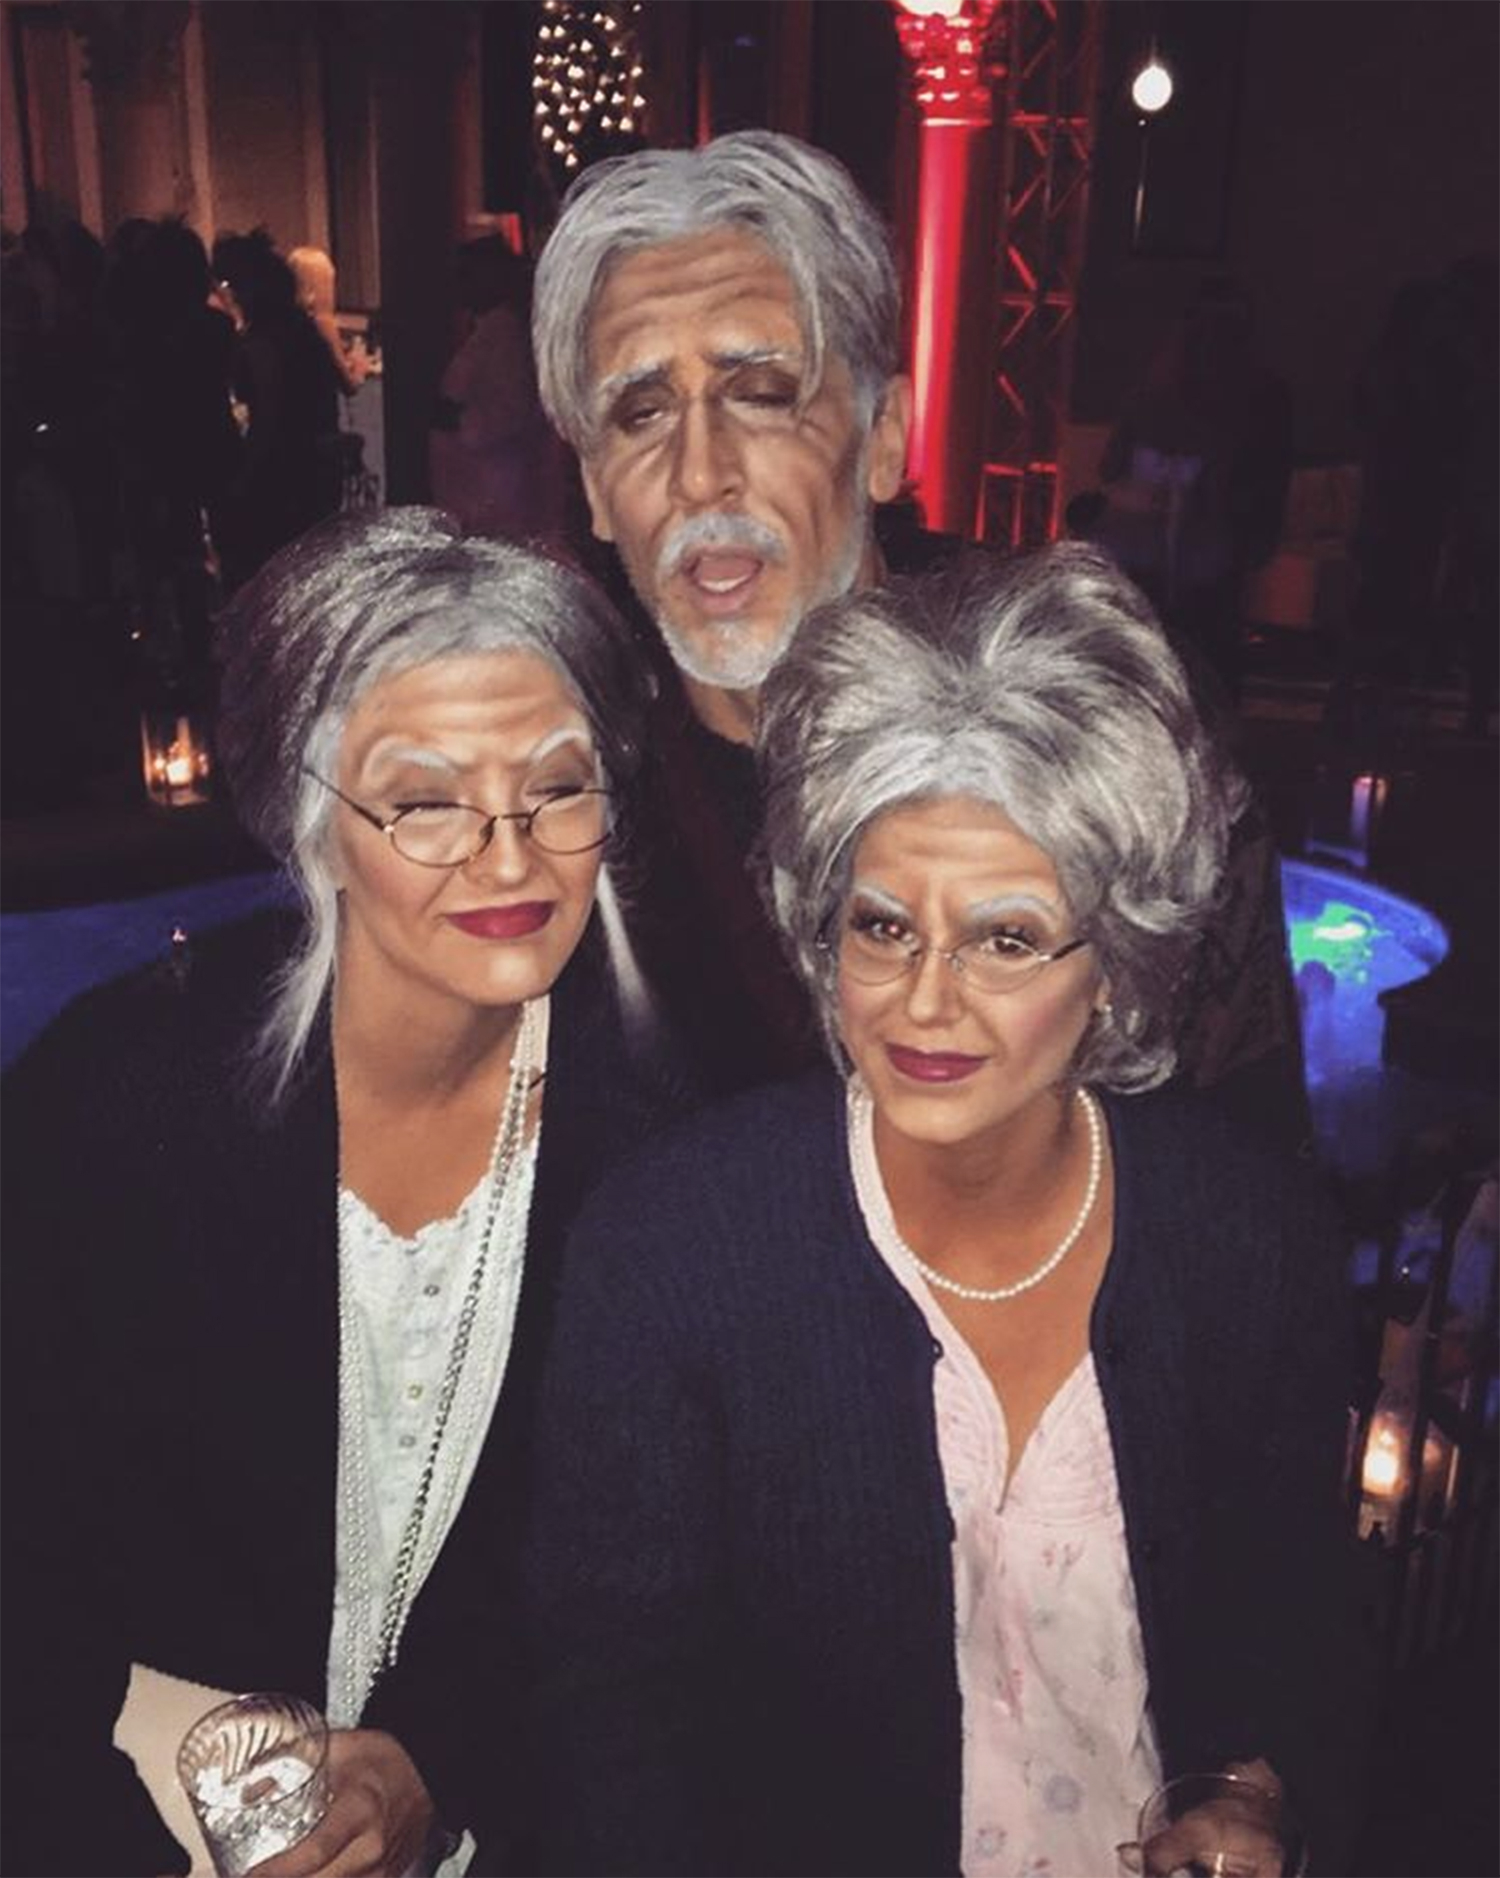 jojo fletcher jordan rodgers were old people for halloween